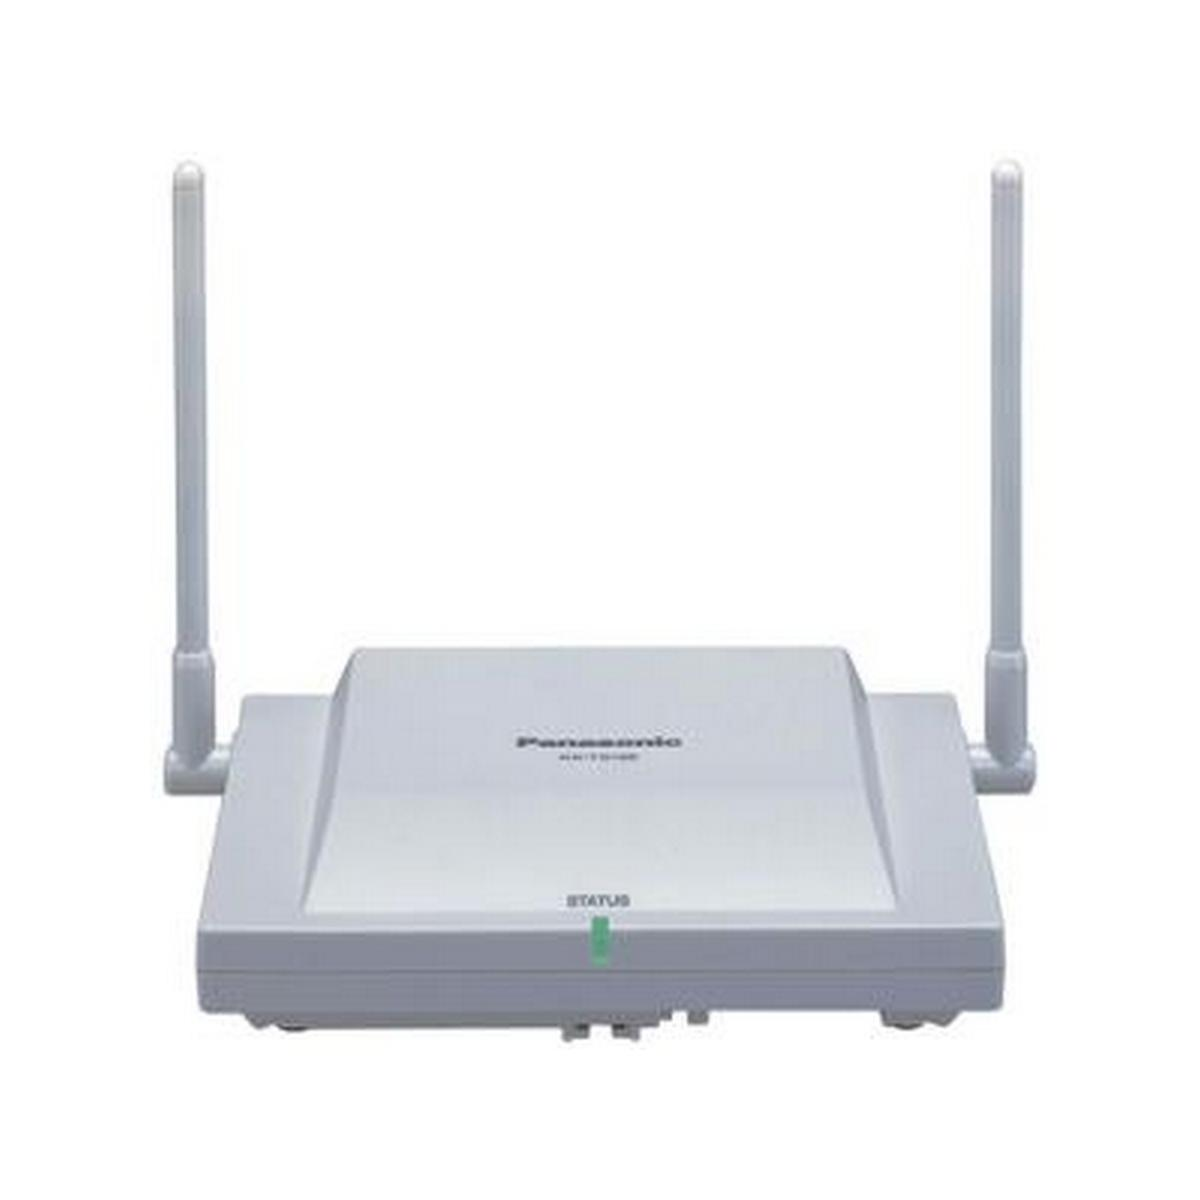 Panasonic KX-T0155 2-CHANNEL DECT CELL STATION (DCS)